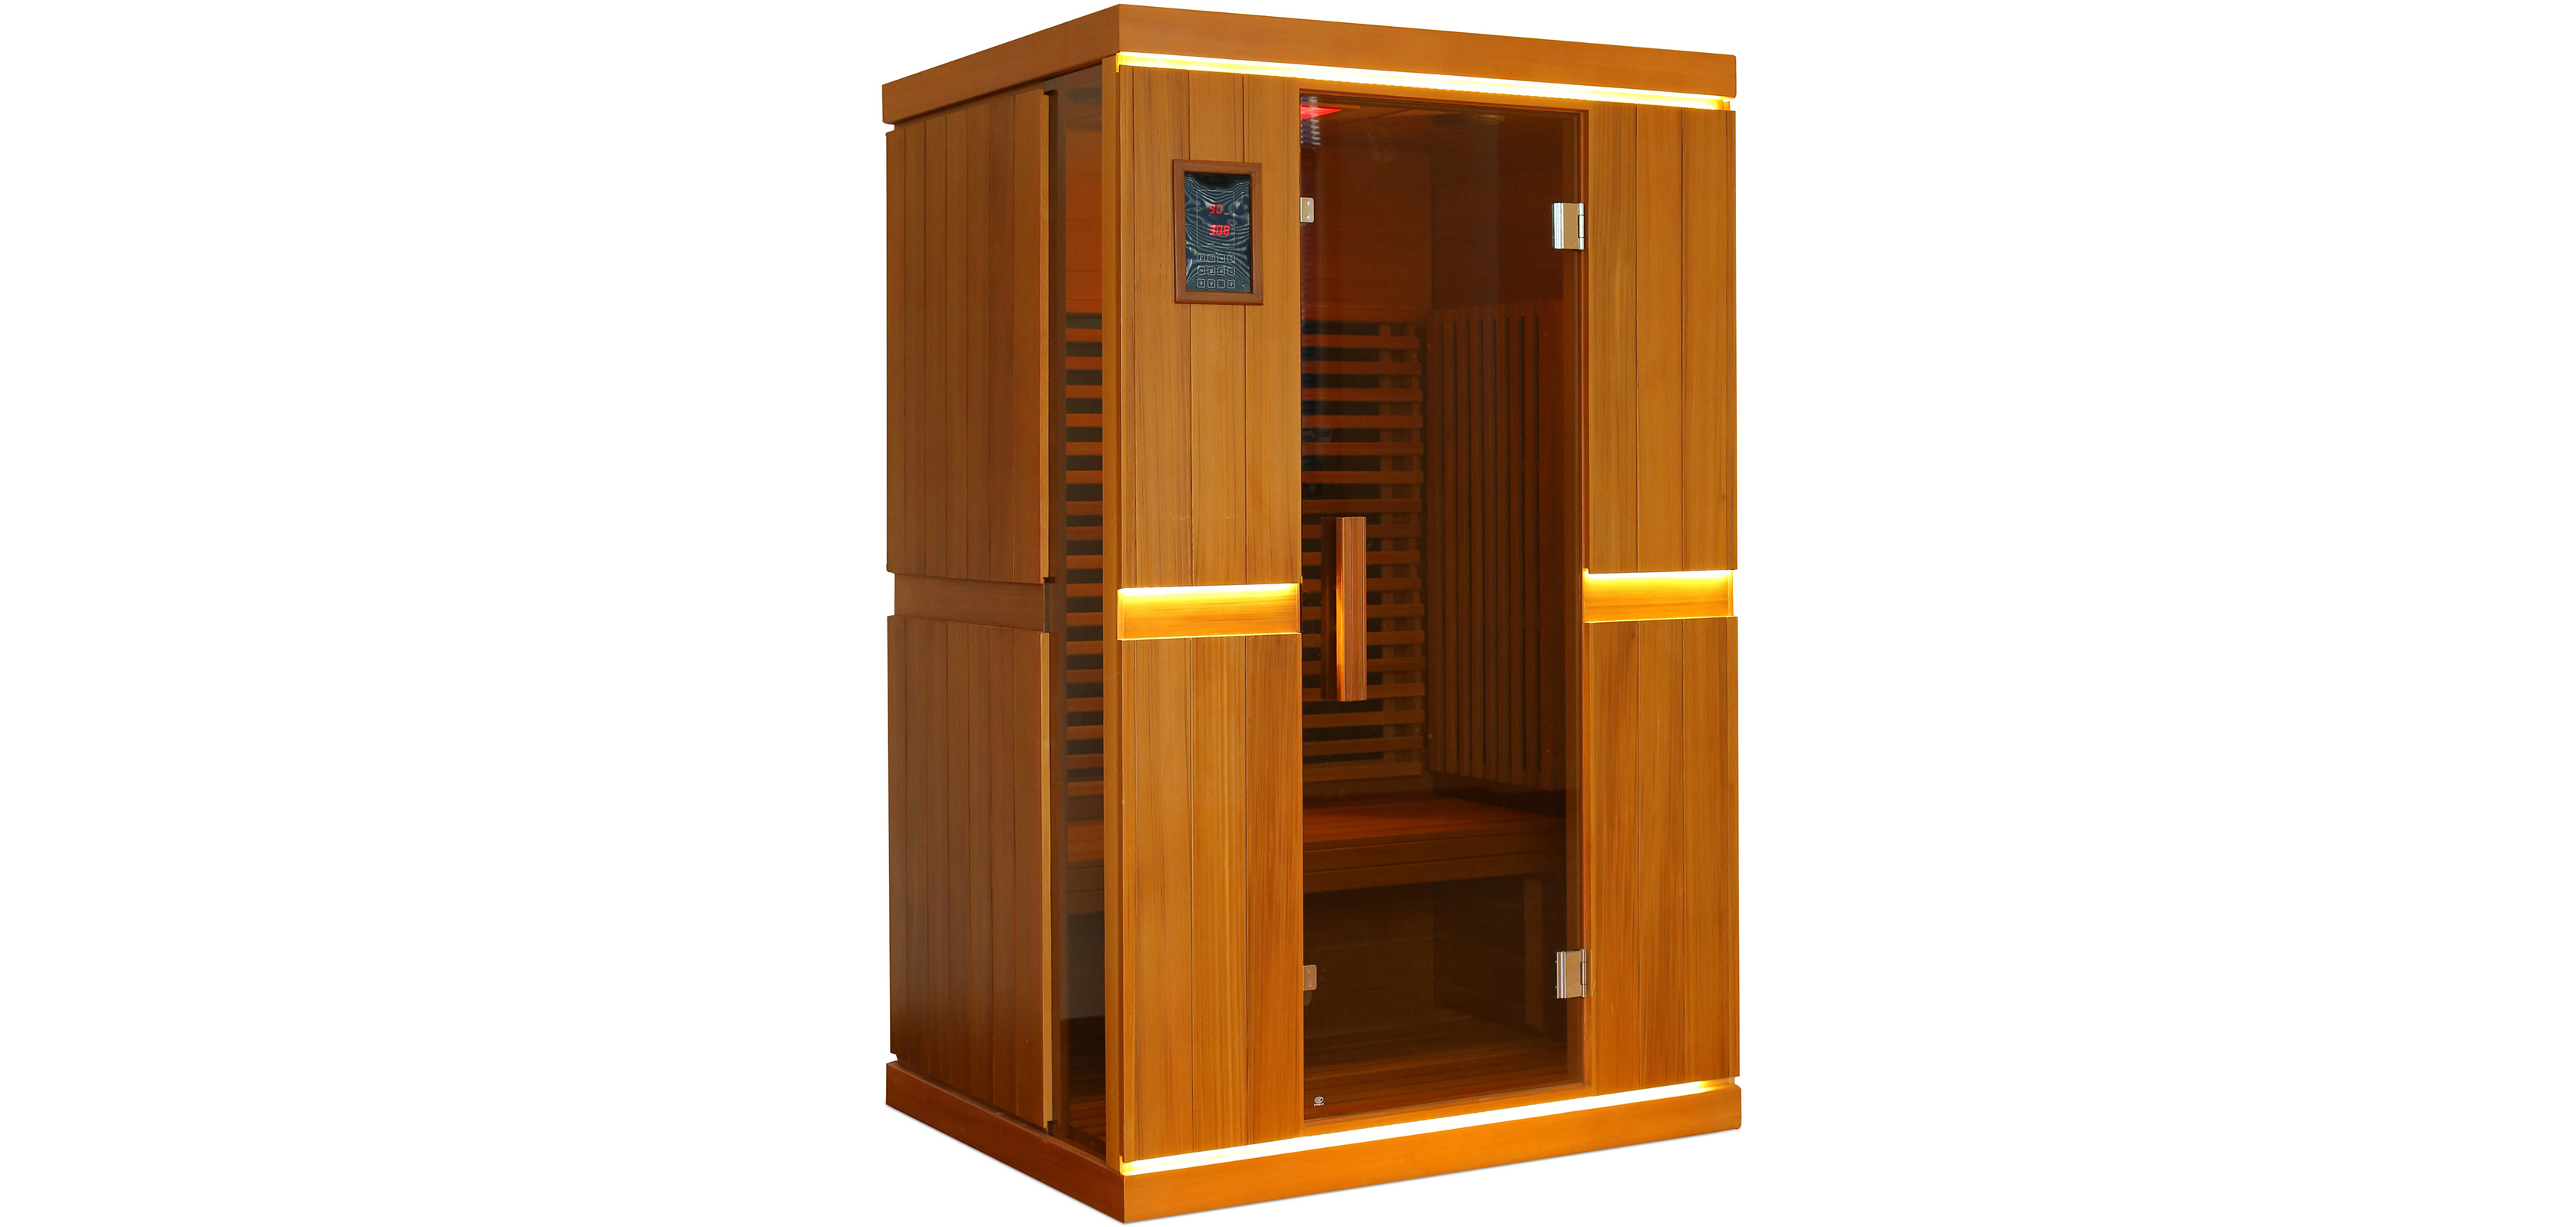 infrarot sauna f r 2 personen. Black Bedroom Furniture Sets. Home Design Ideas